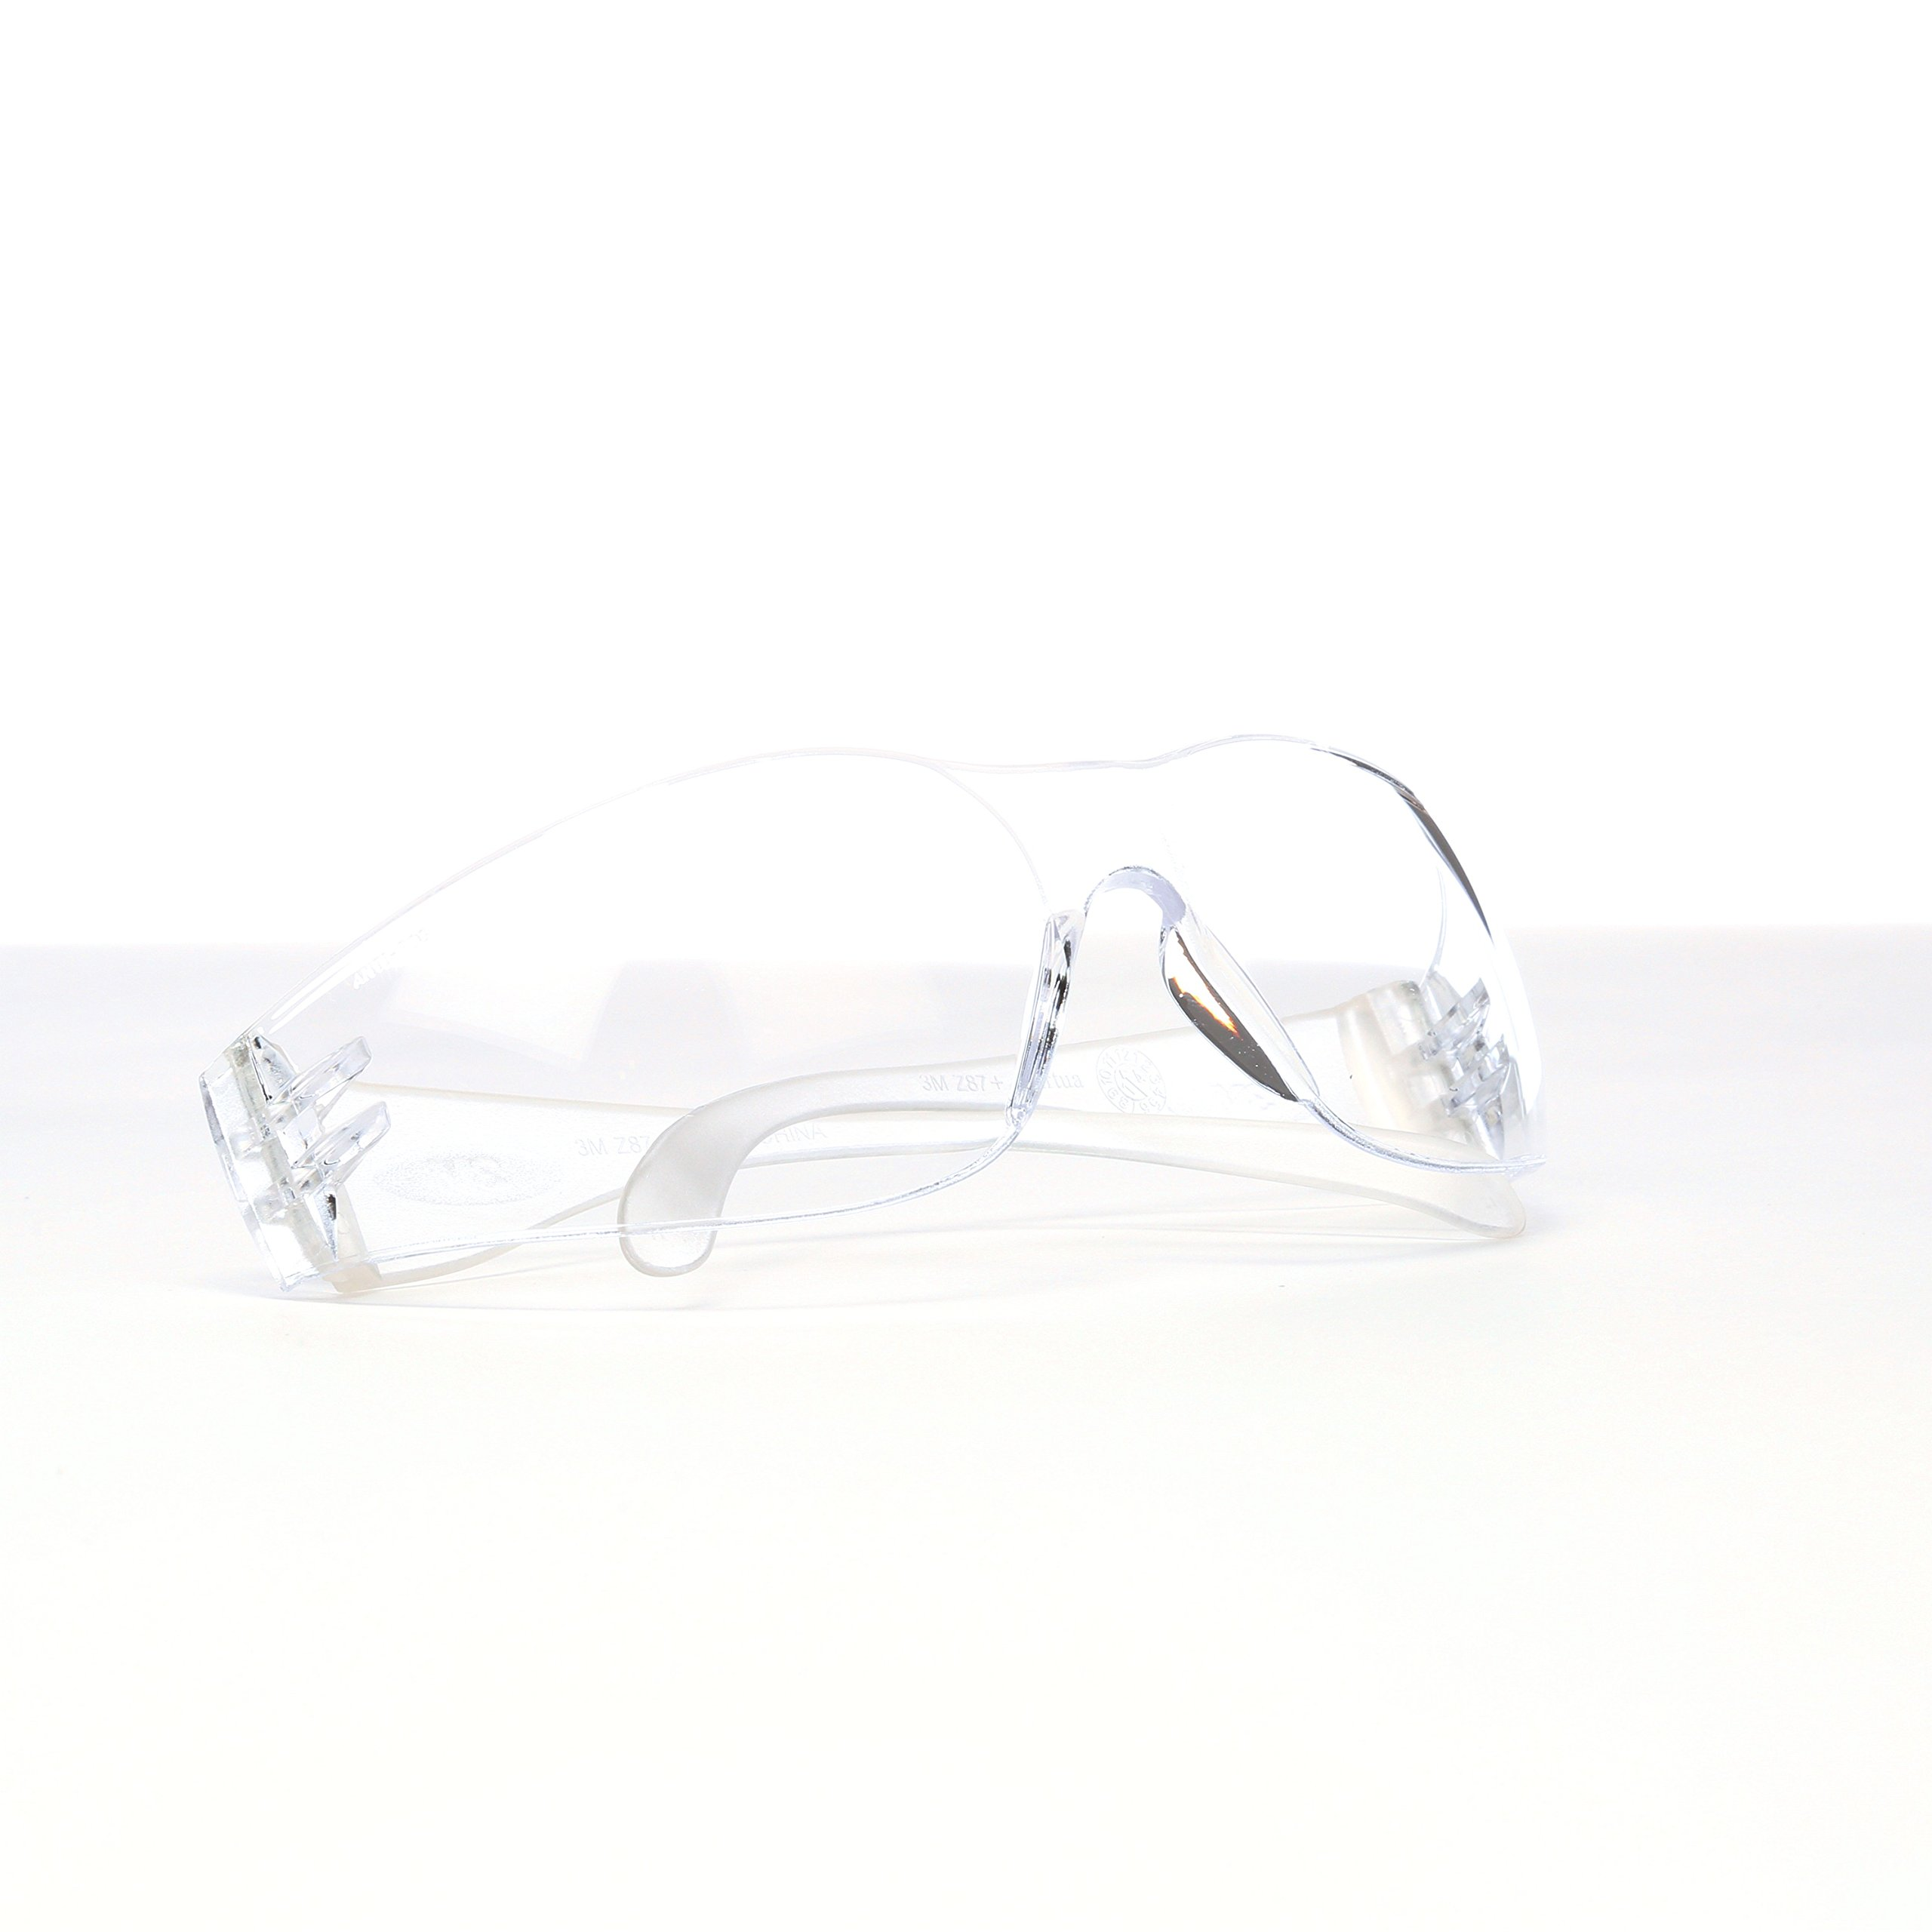 3M Virtua Protective Eyewear, 11329-00000-20 Clear Anti-Fog Lens, Clear Temple (Pack of 20) by 3M Personal Protective Equipment (Image #2)